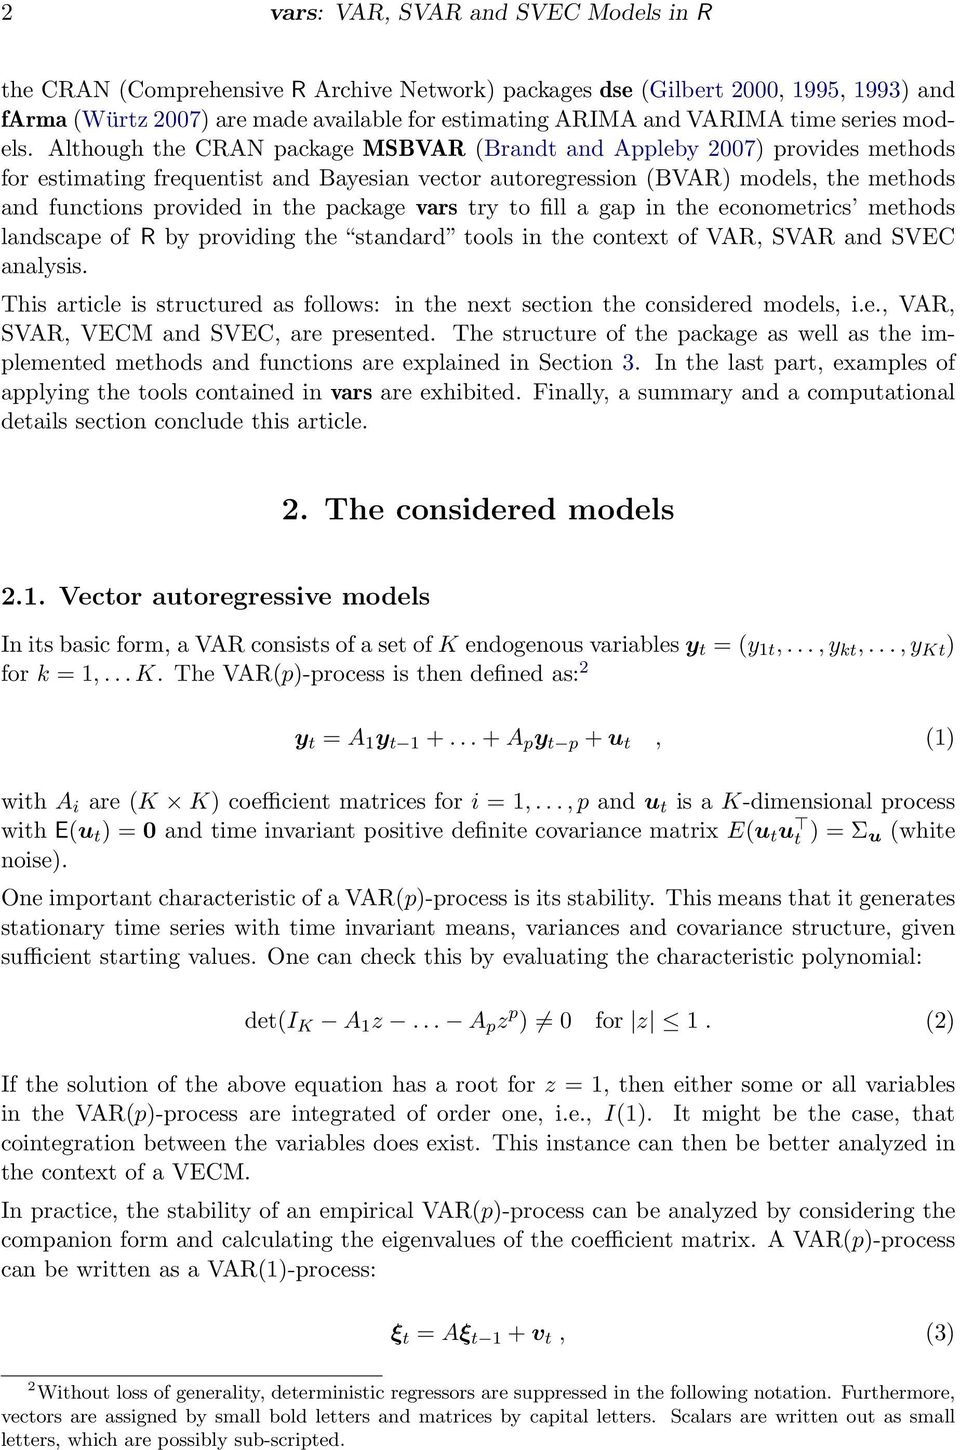 Although the CRAN package MSBVAR (Brandt and Appleby 2007) provides methods for estimating frequentist and Bayesian vector autoregression (BVAR) models, the methods and functions provided in the